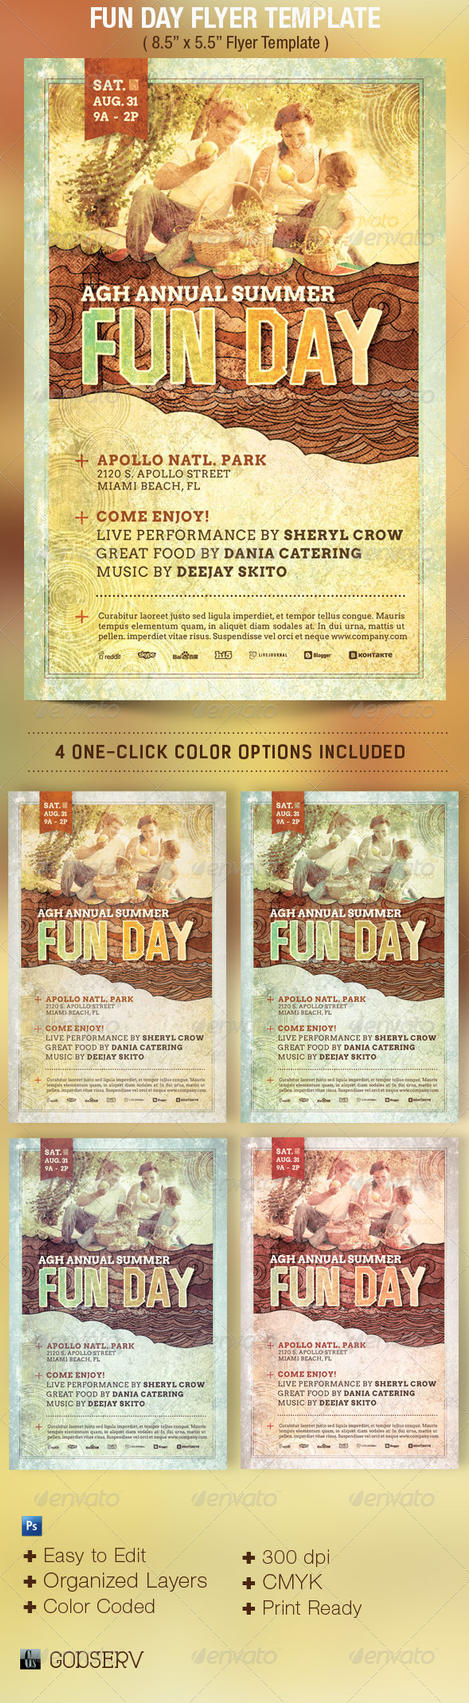 fun day event flyer template by godserv on deviantart. Black Bedroom Furniture Sets. Home Design Ideas